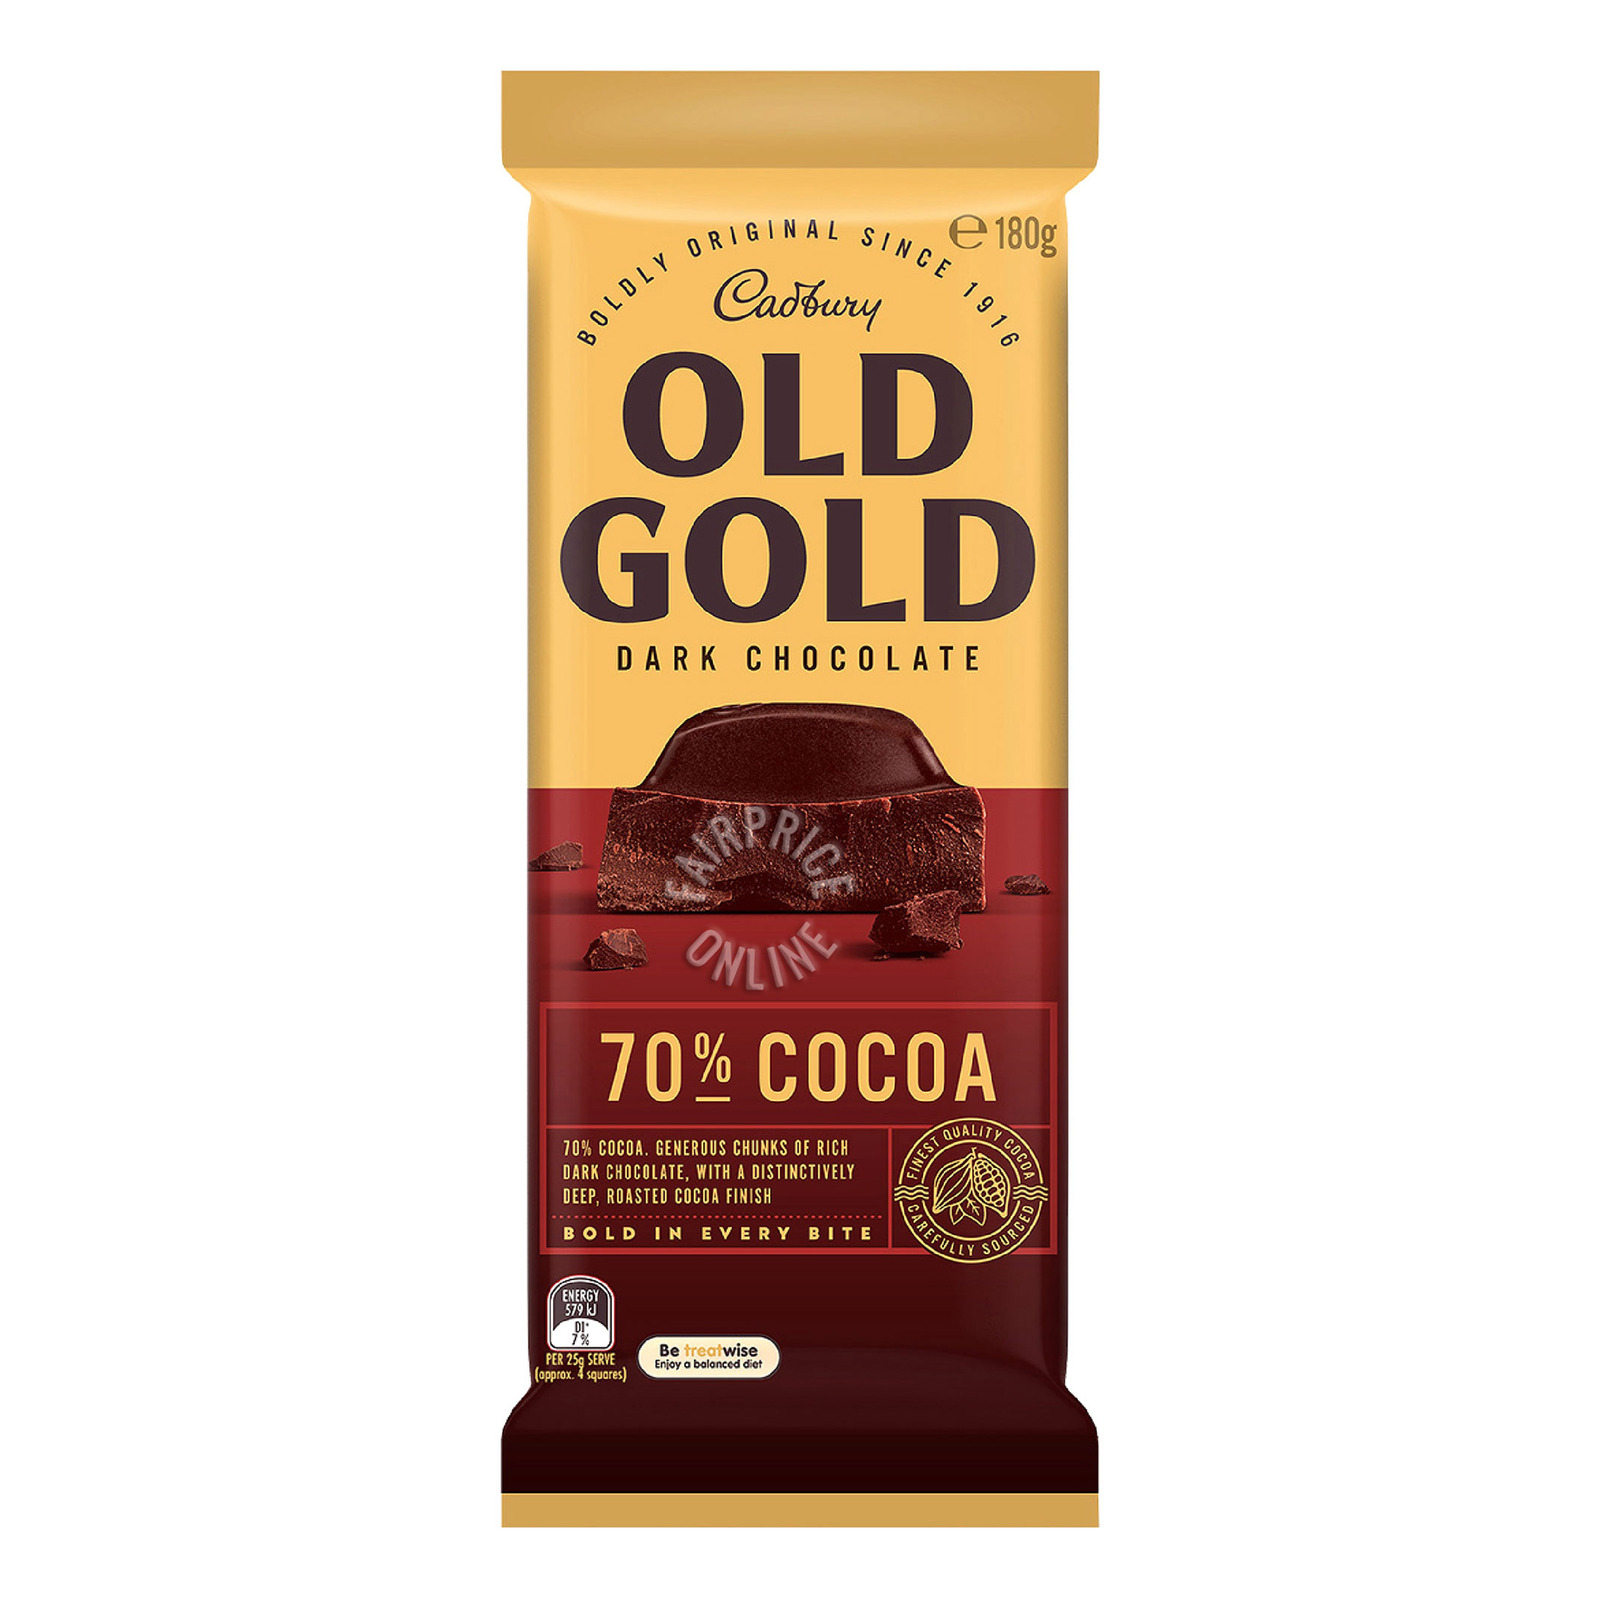 CADBURY Old Gold Dark Chocolate - 70% Cocoa 180g